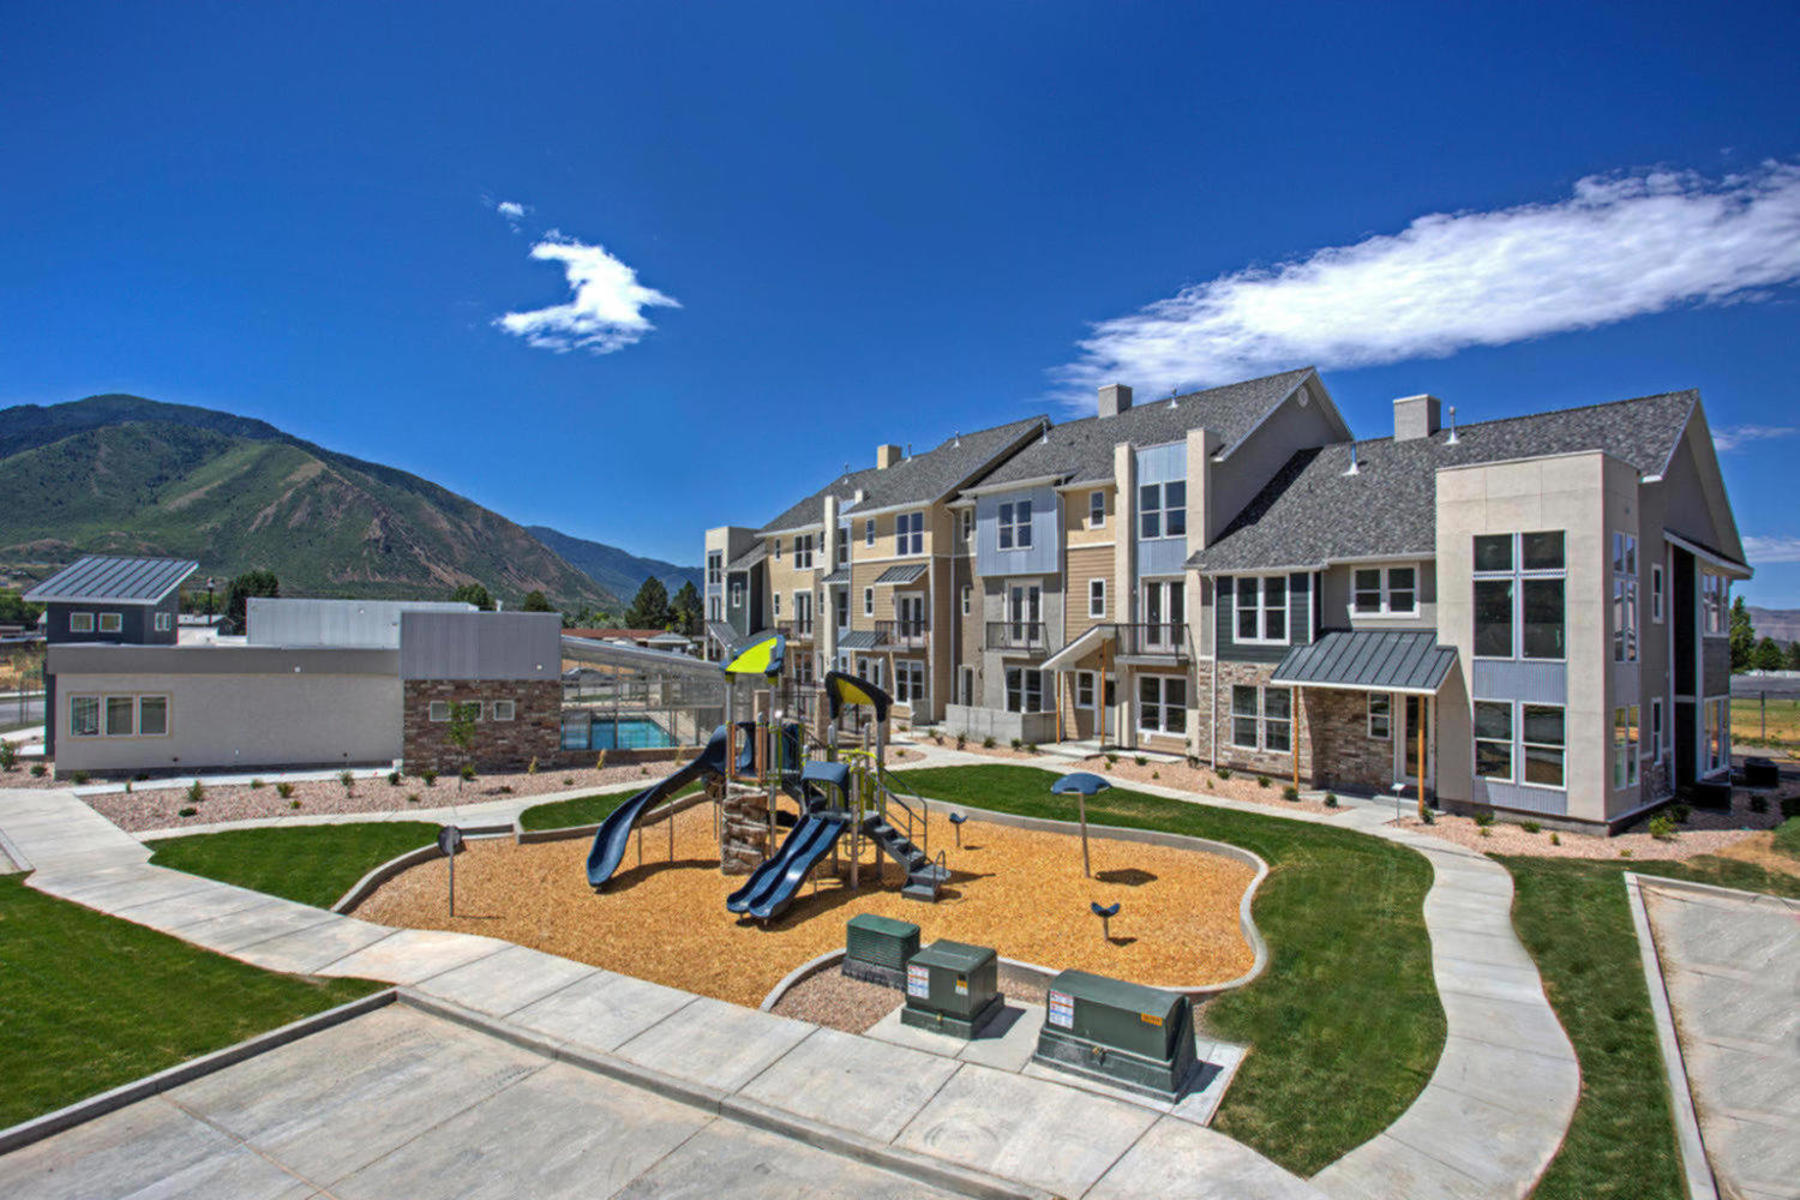 townhouses için Satış at The Manhattan Unit 37 at The Ridge at Spanish Fork 902 South 2560 East, #37, Spanish Fork, Utah 84660 Amerika Birleşik Devletleri